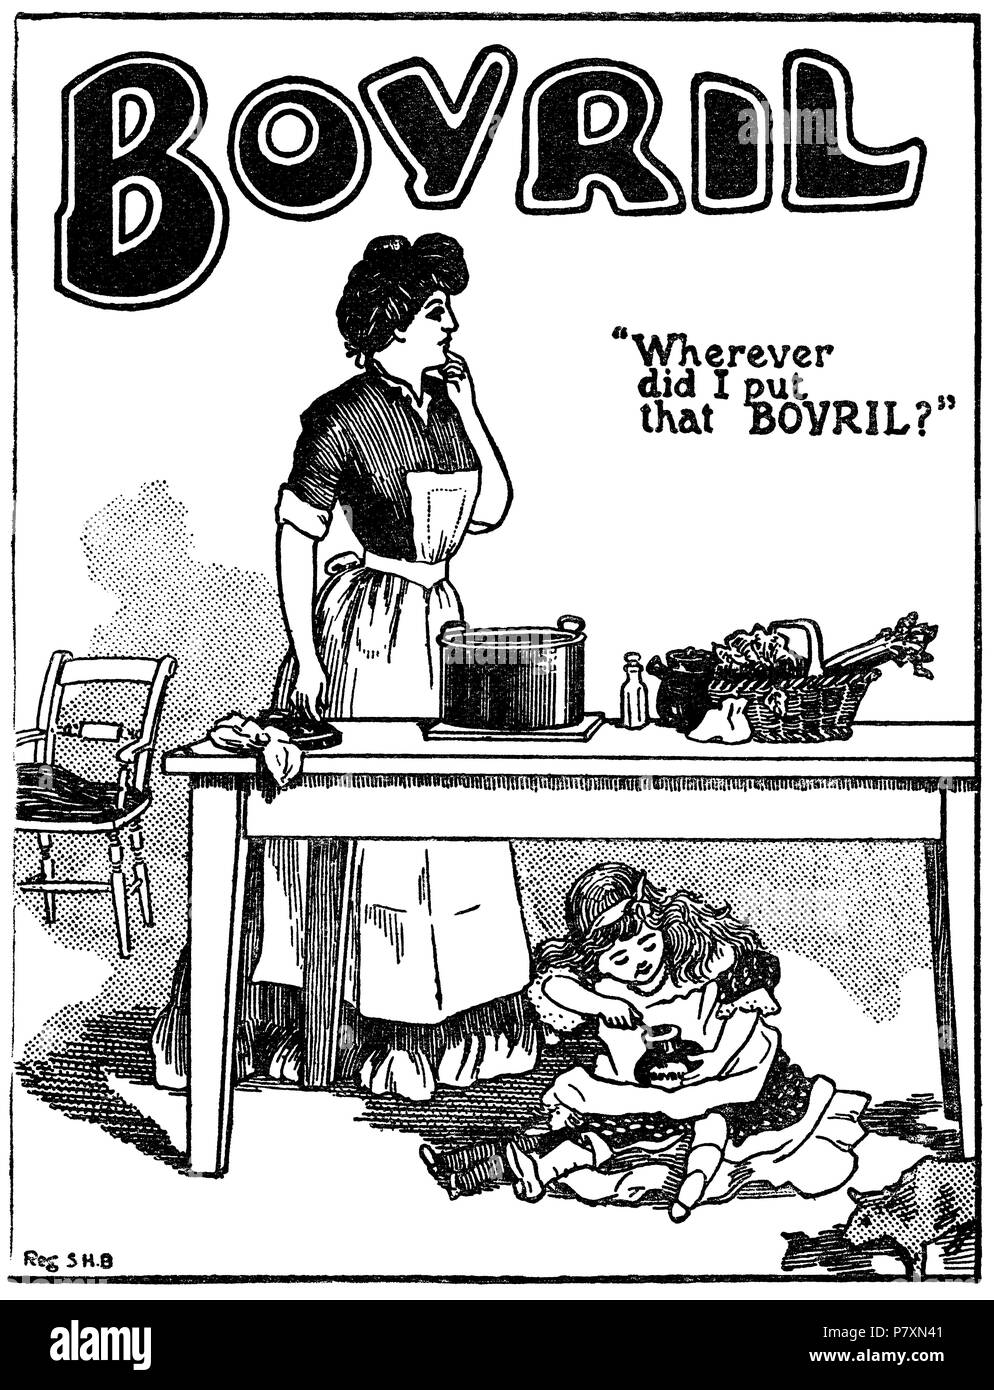 1904 British advertisement for Bovril beef extract. - Stock Image